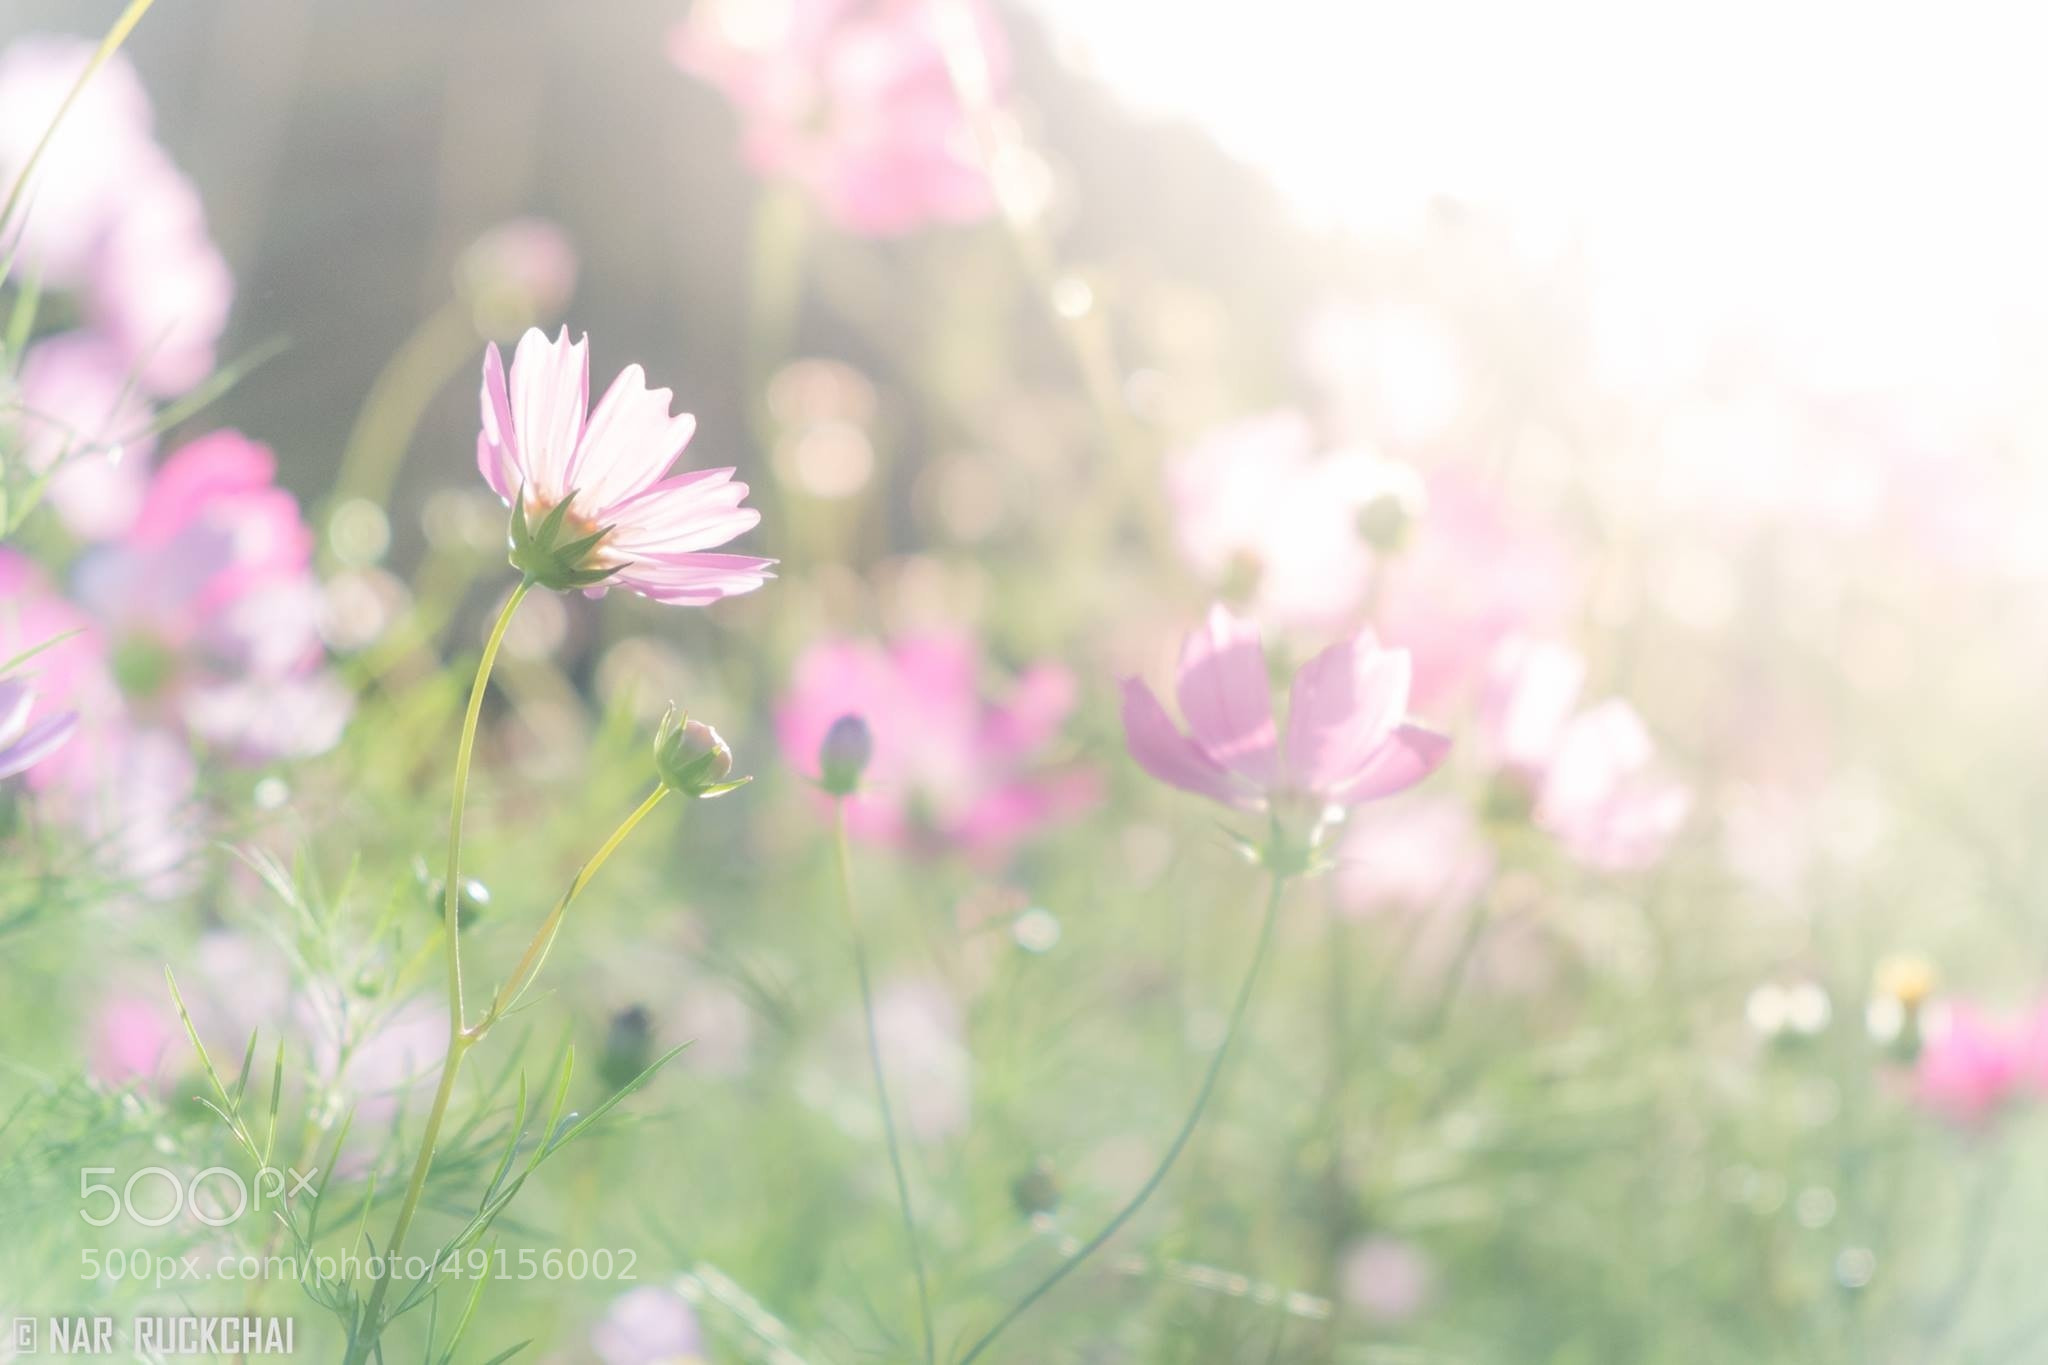 Photograph Cosmos under the sun by Nar Ruckchai on 500px